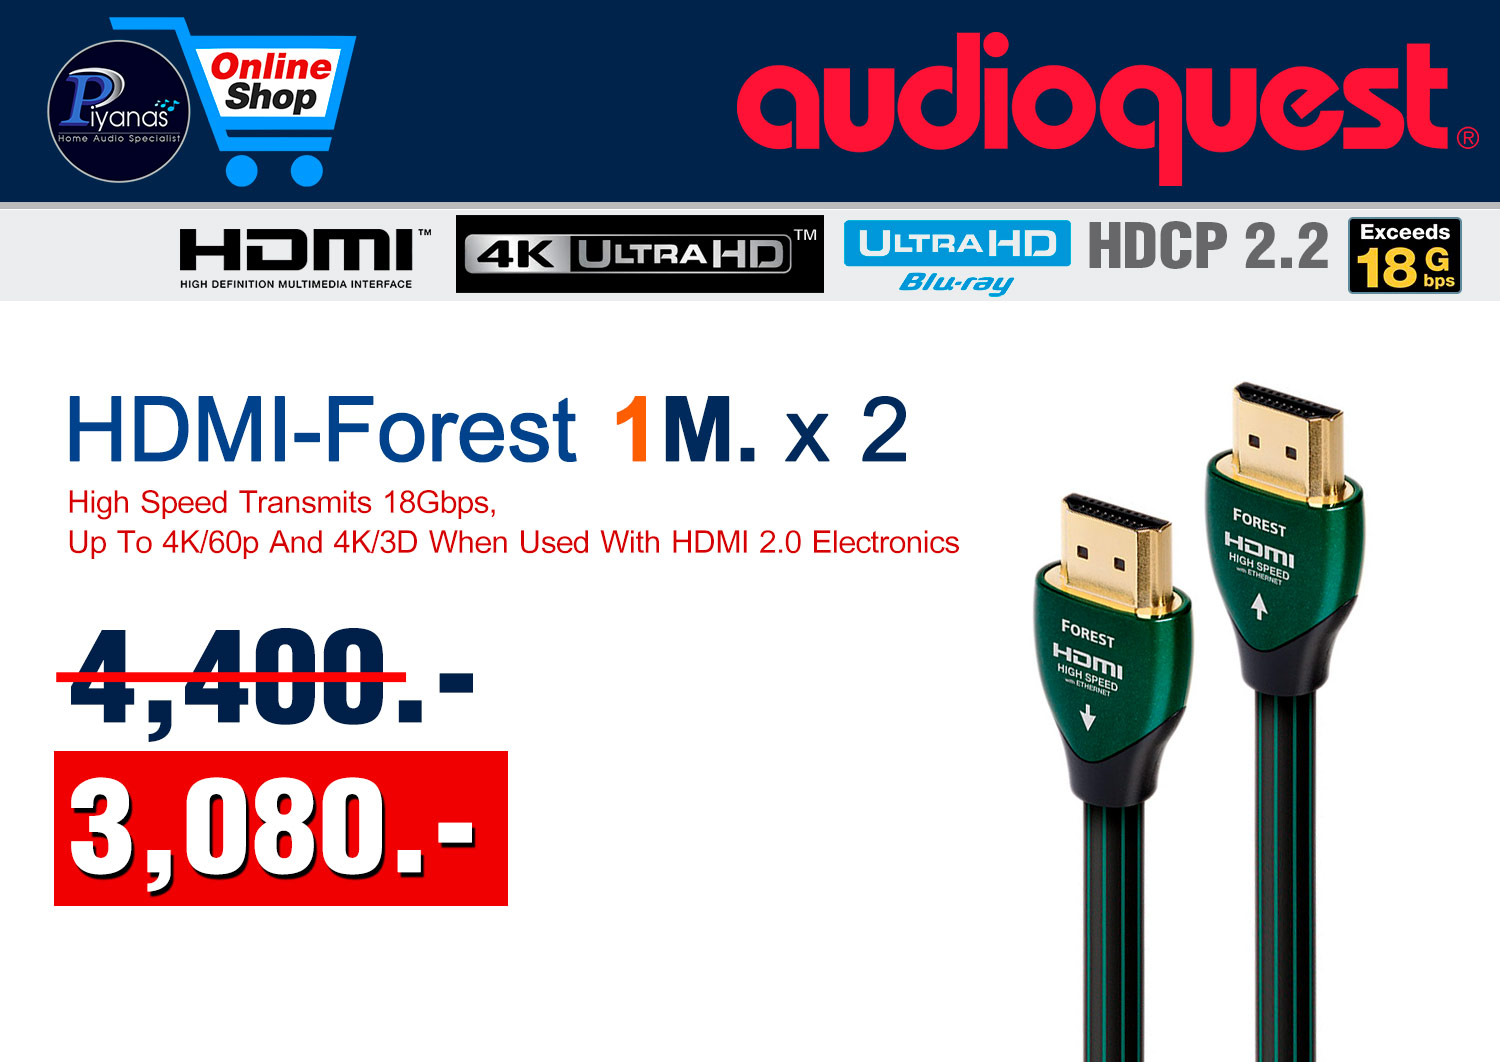 HDMI-Forest 1M. x2